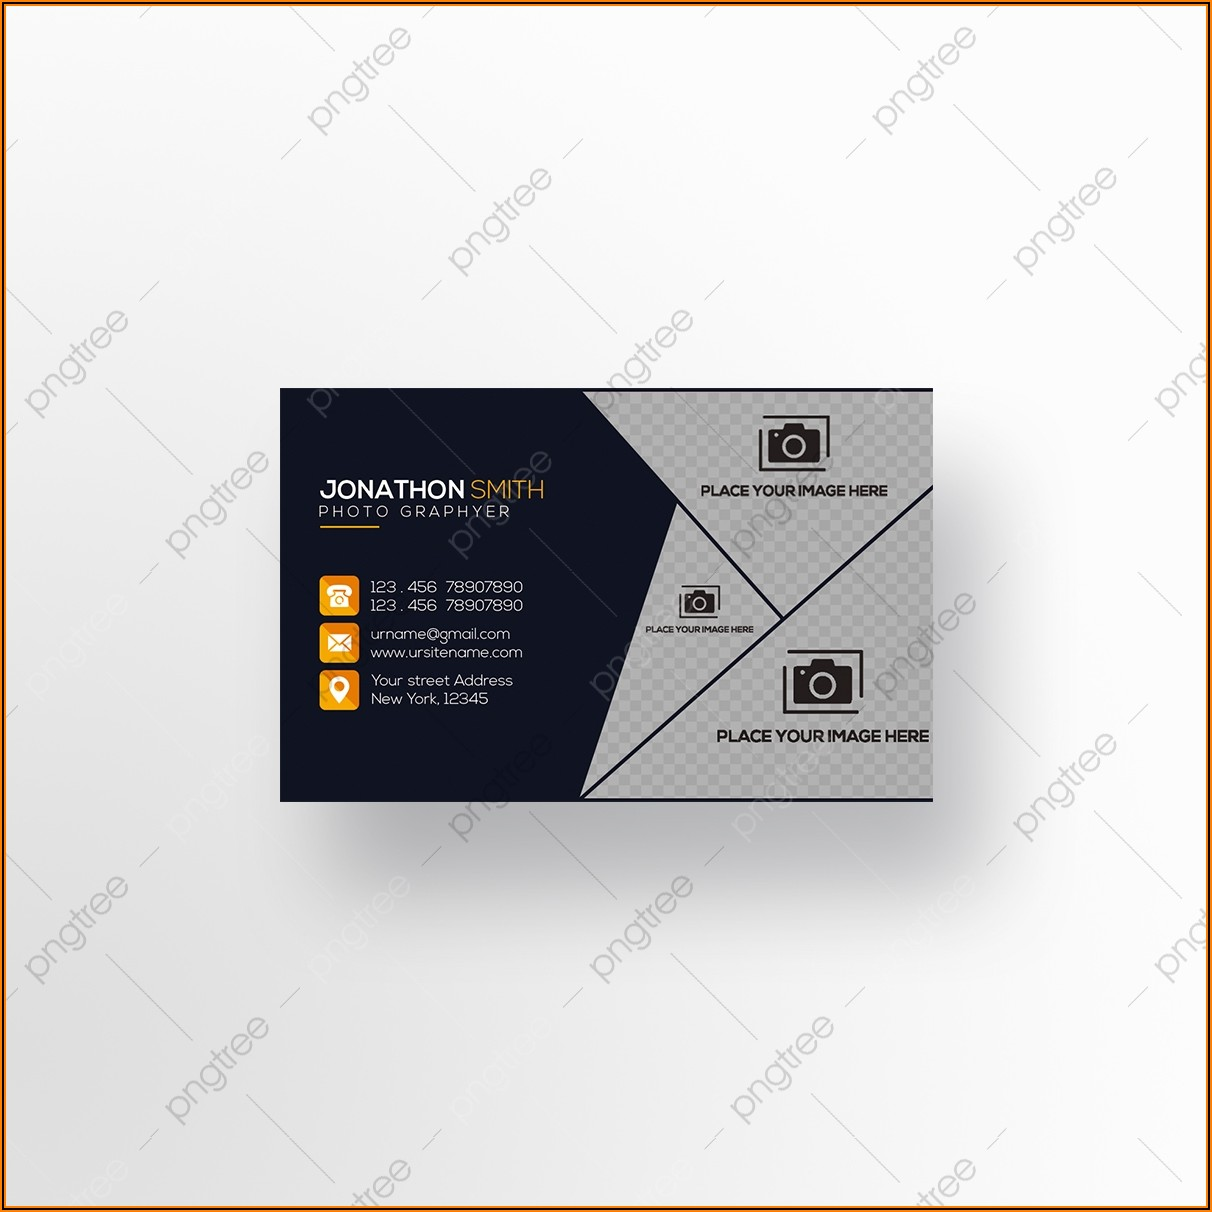 Photography Business Card Vector Free Download